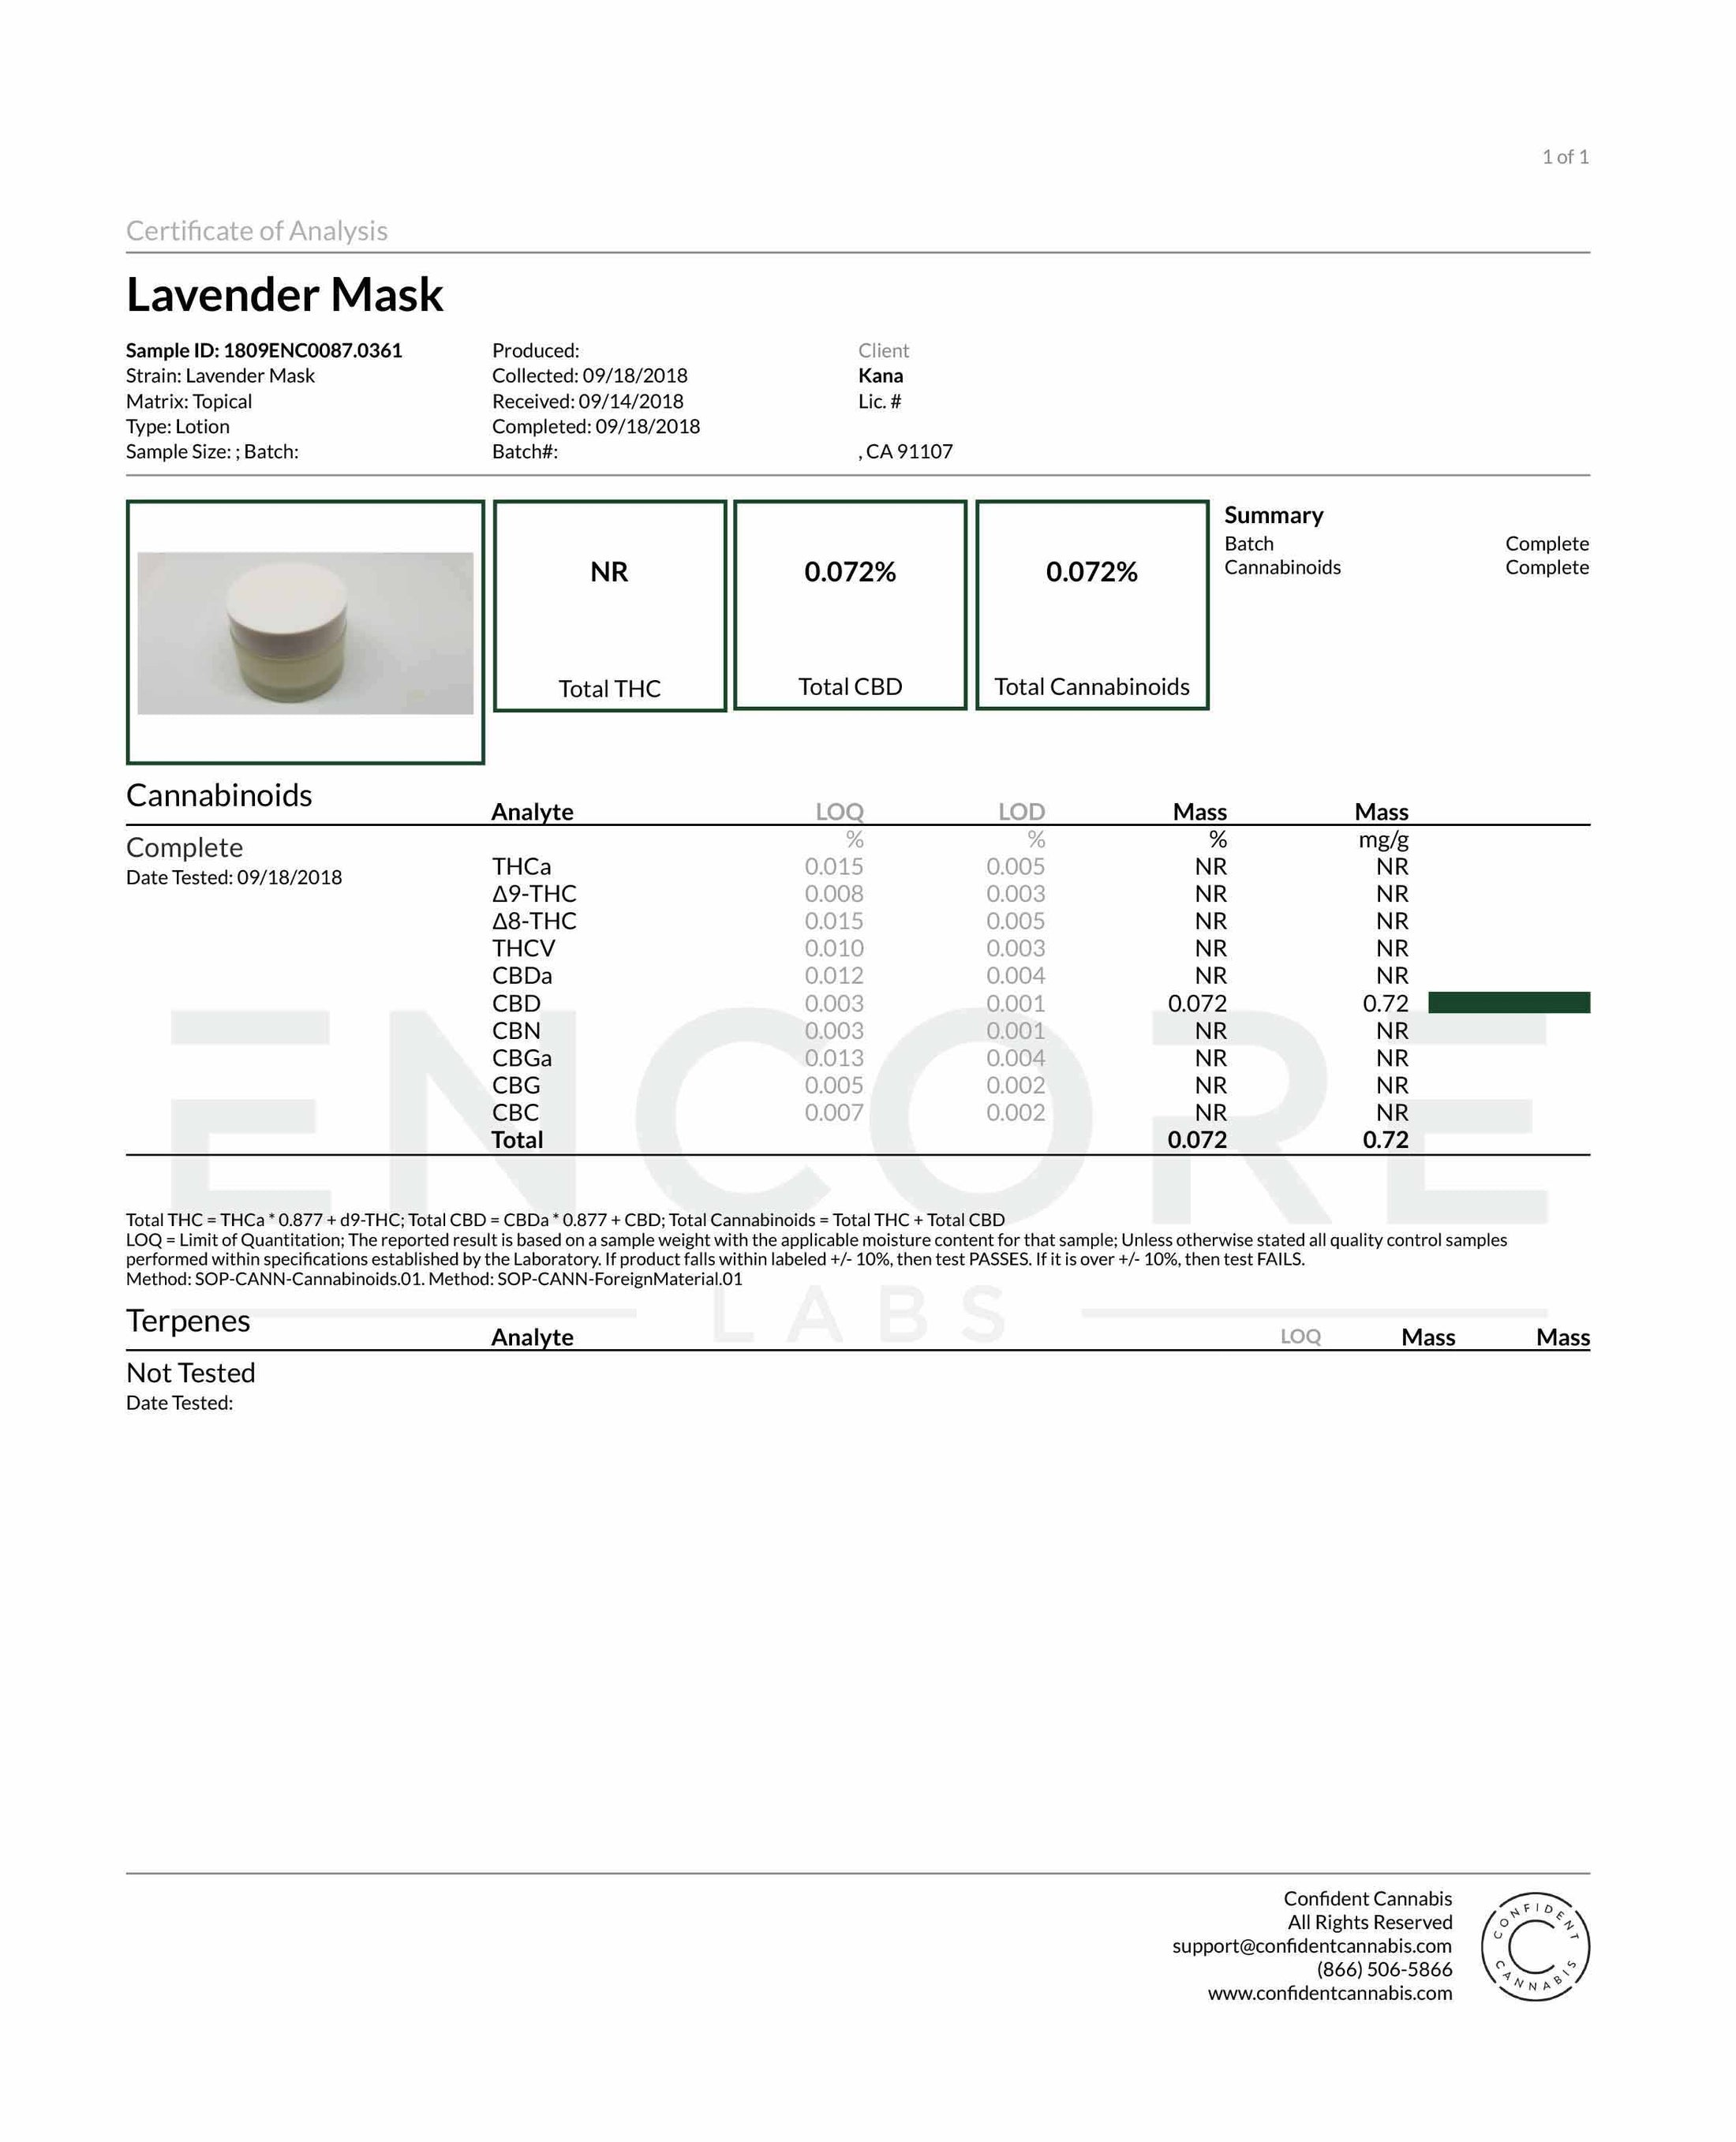 Lavender Hemp Sleeping Mask Certificate of Analysis